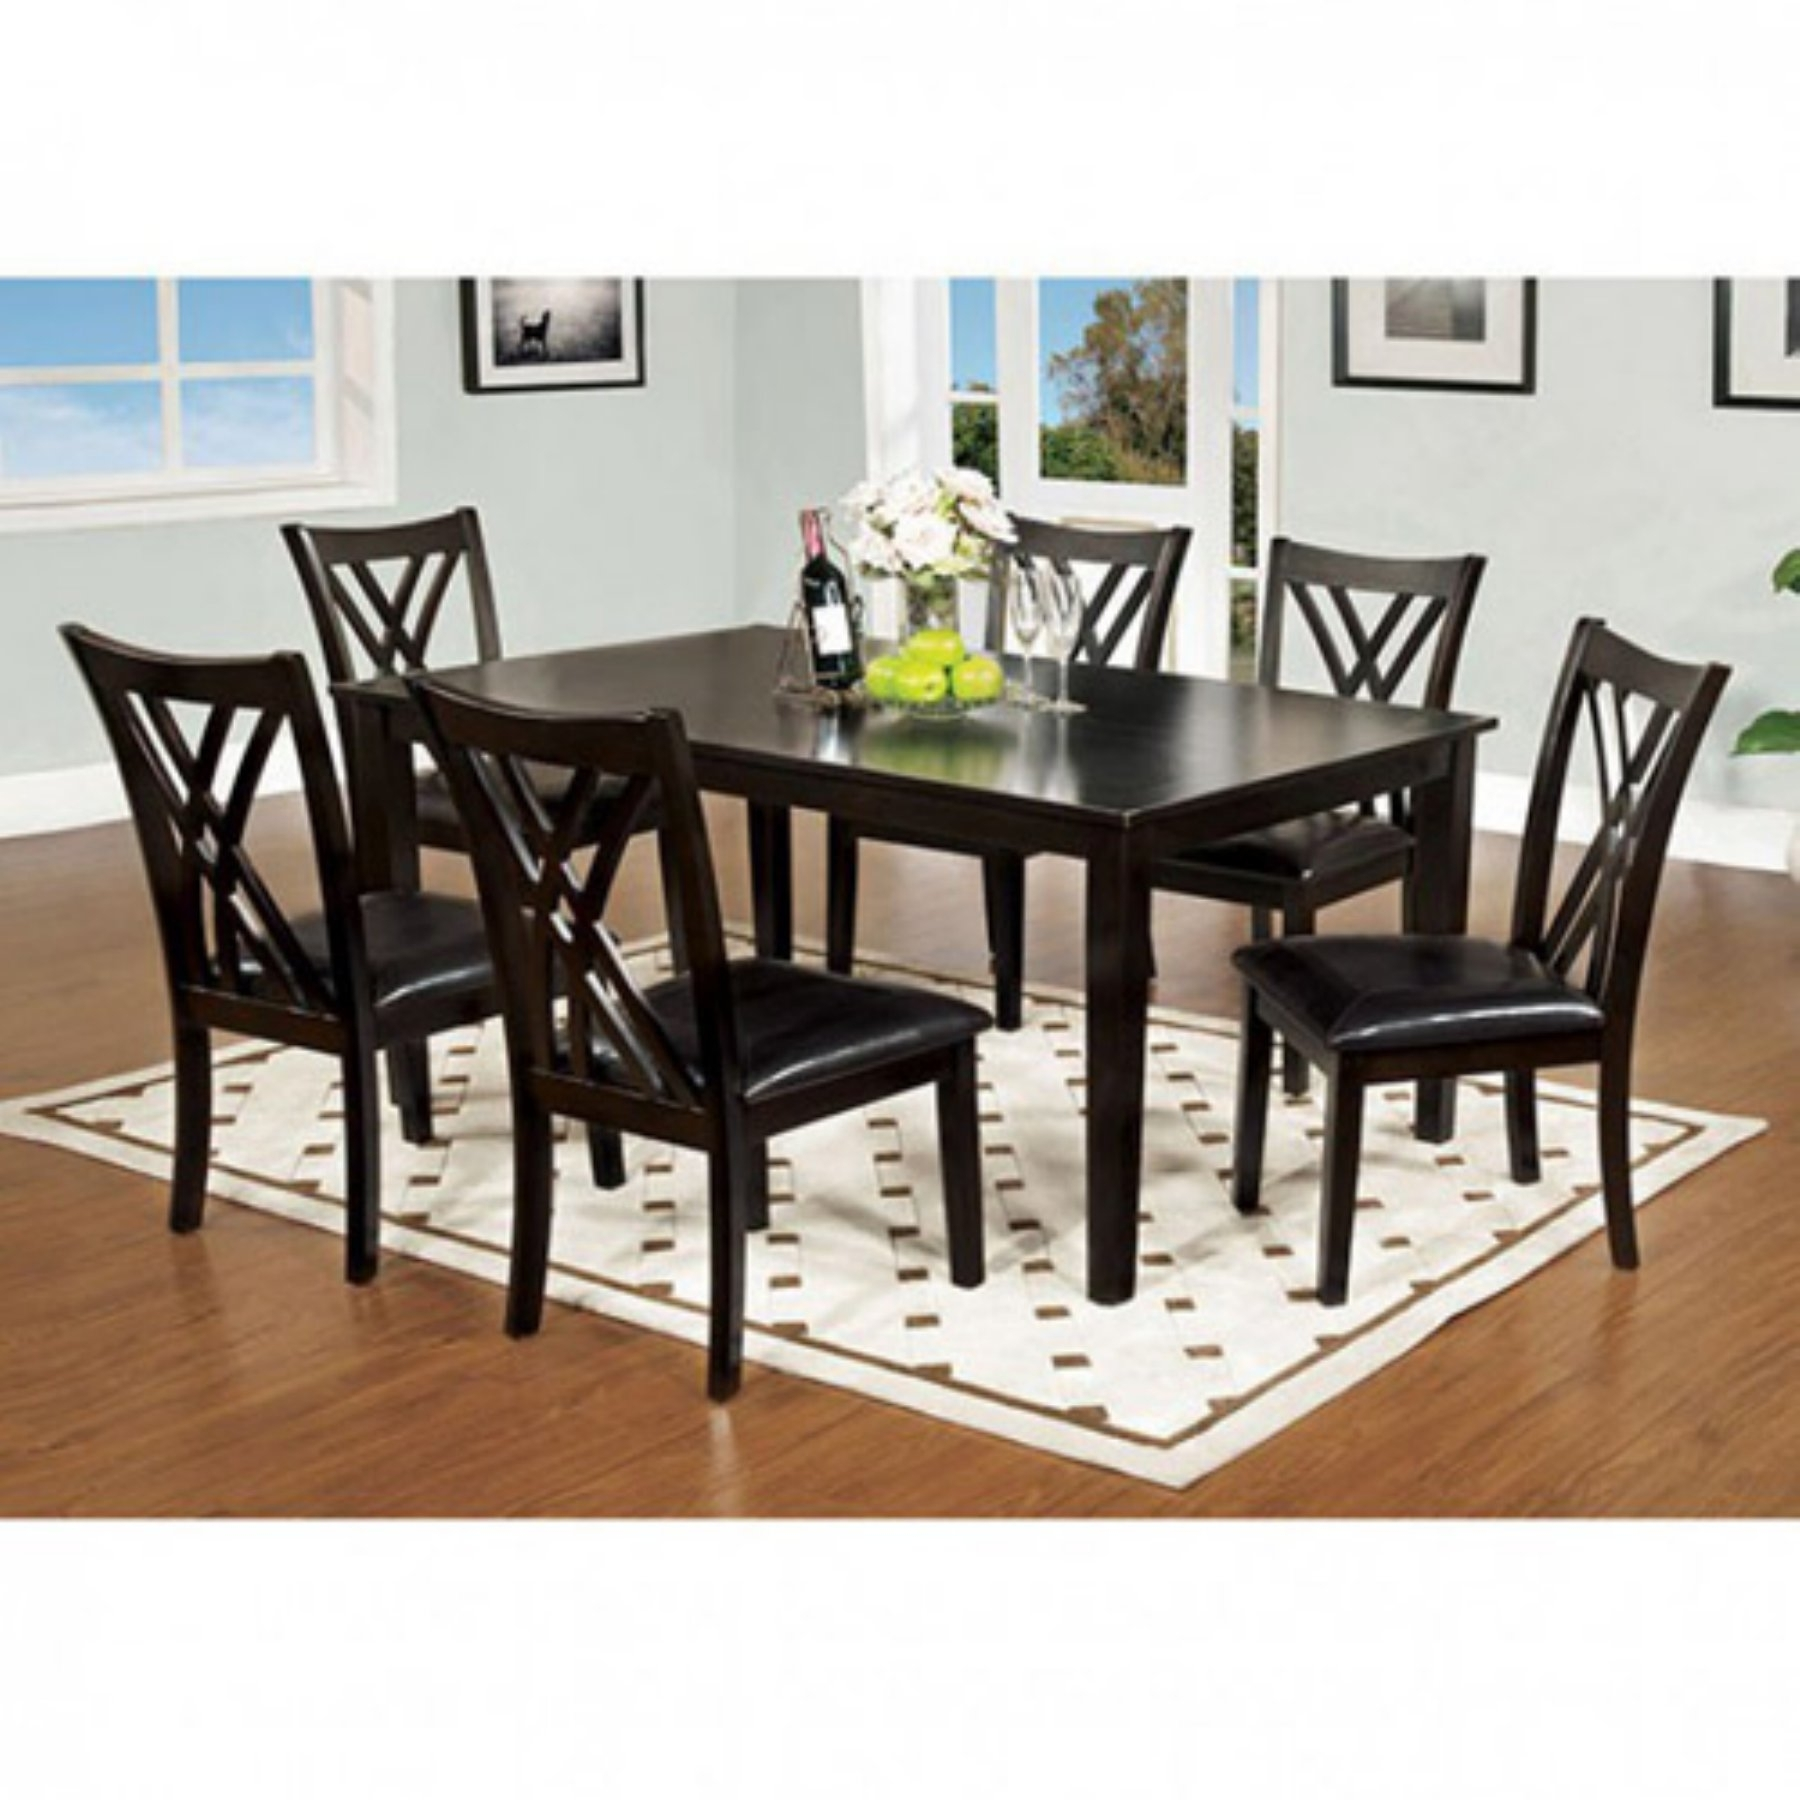 Benzara Springhill Enticing 7 Piece Rectangular Dining Table Set In Within Newest Craftsman 7 Piece Rectangle Extension Dining Sets With Uph Side Chairs (Image 6 of 20)